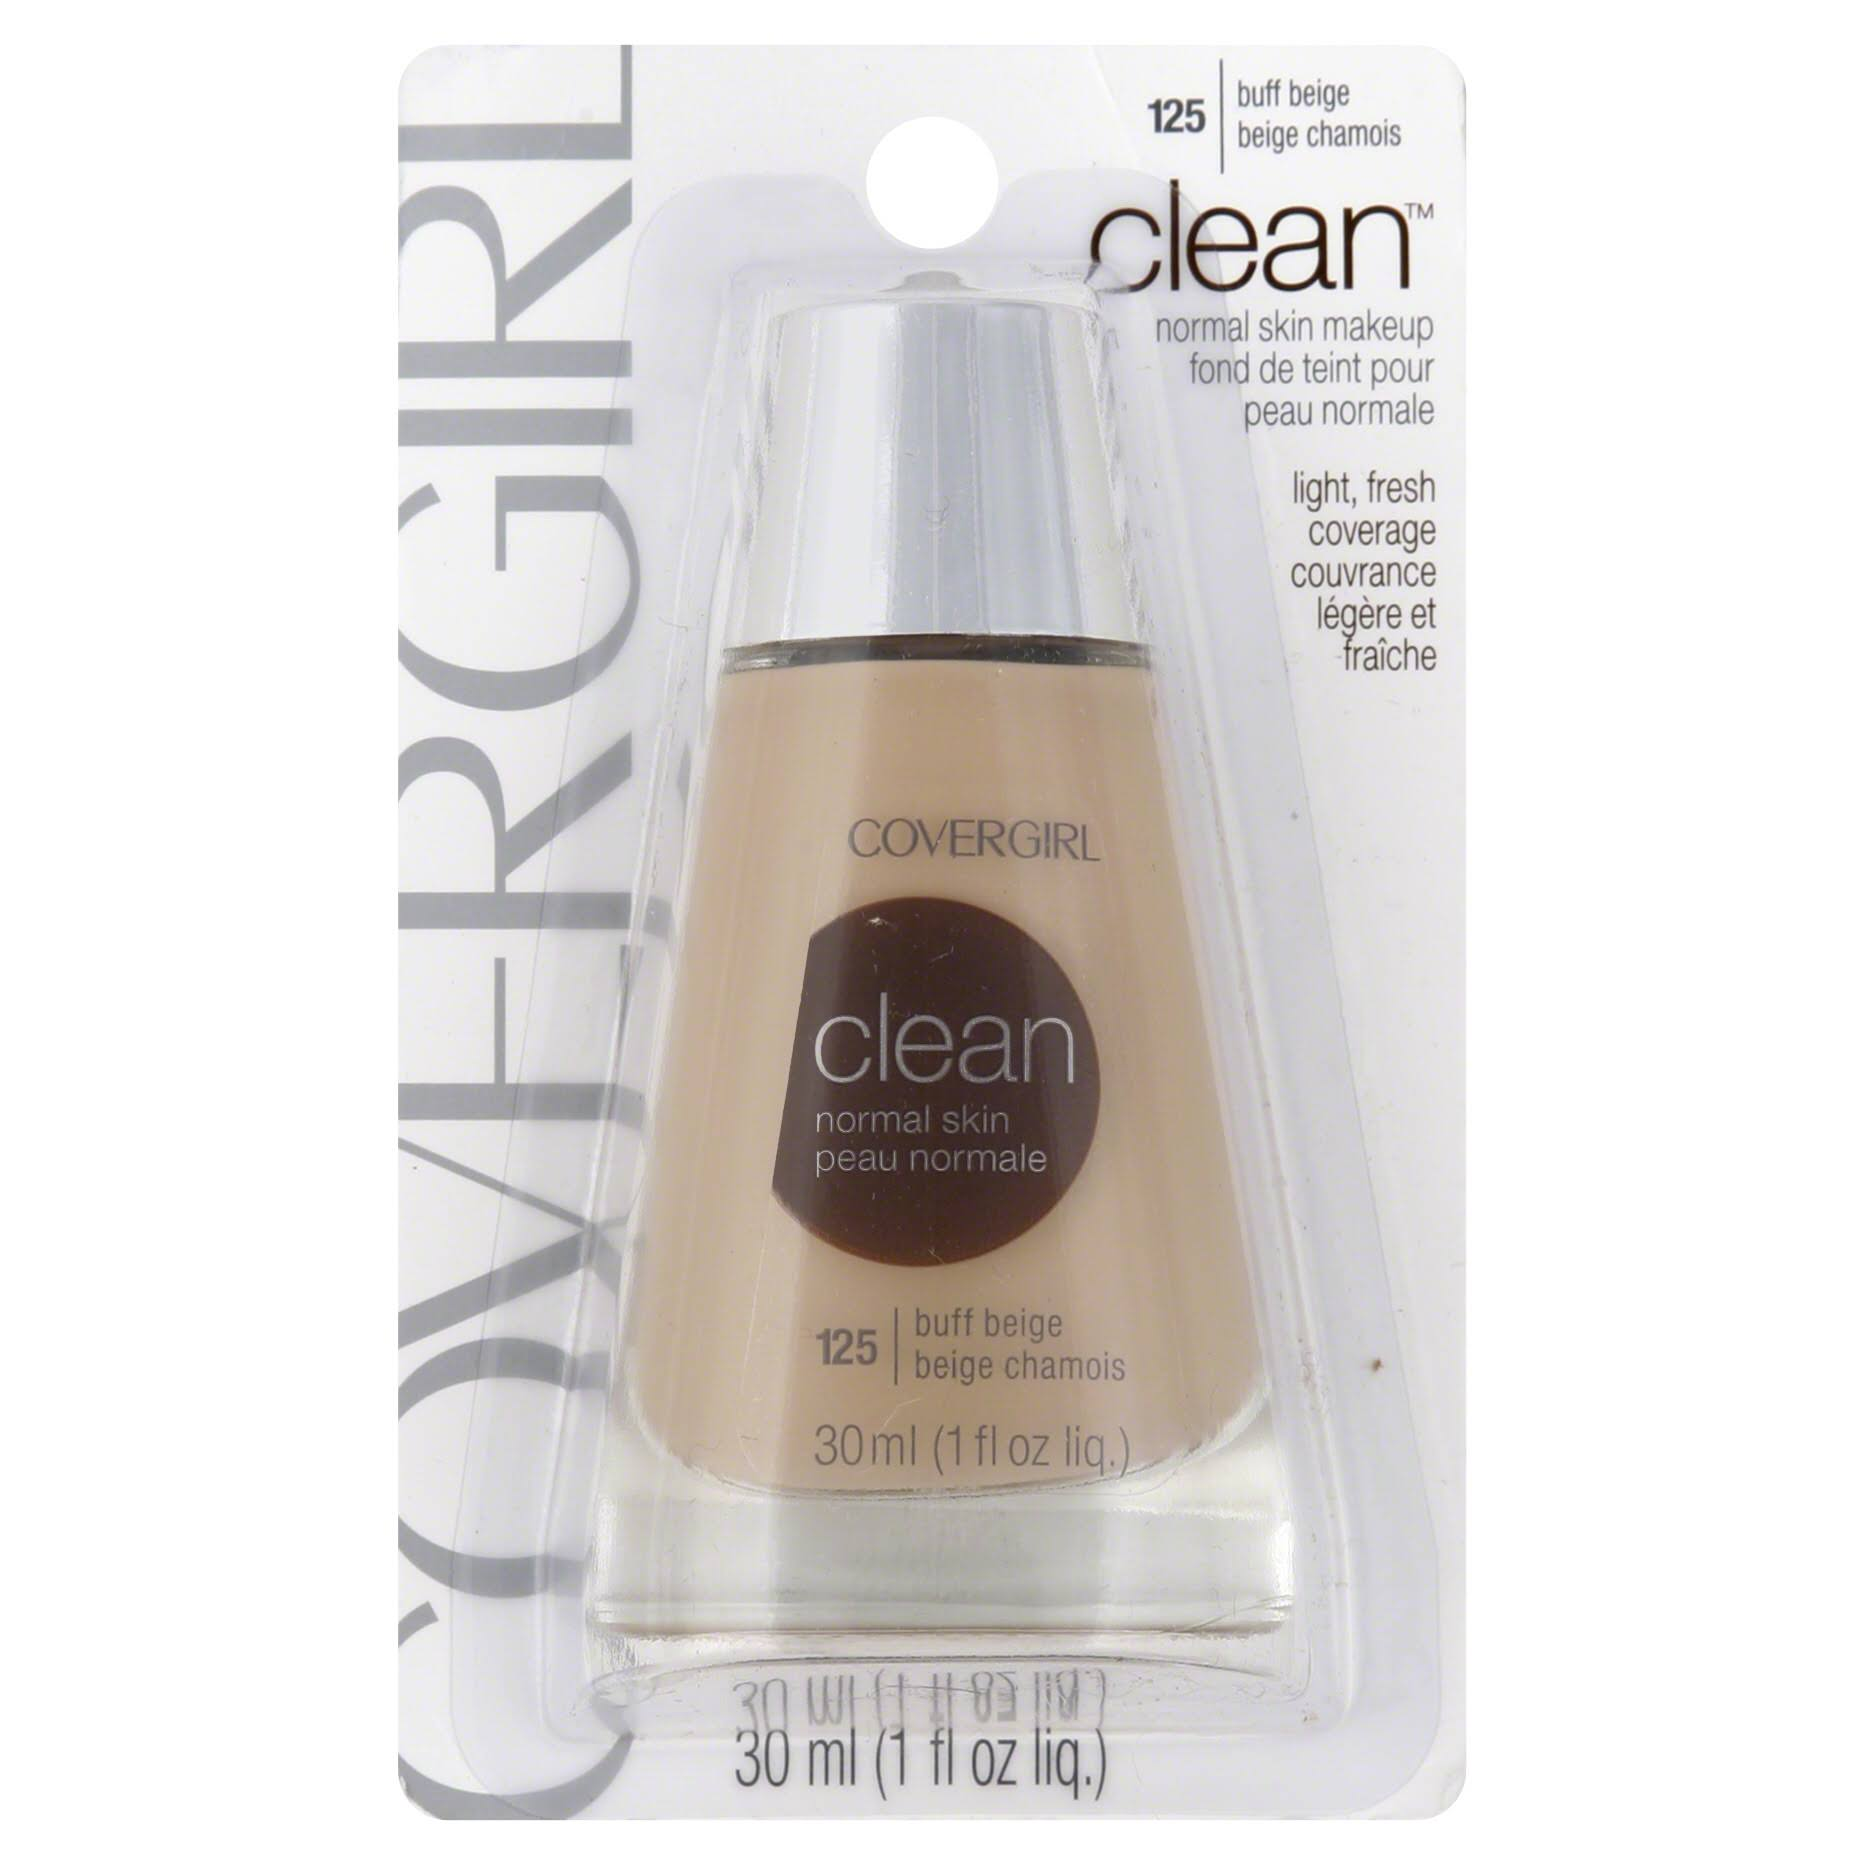 Covergirl Clean Liquid Makeup - Buff Beige 525, 30ml